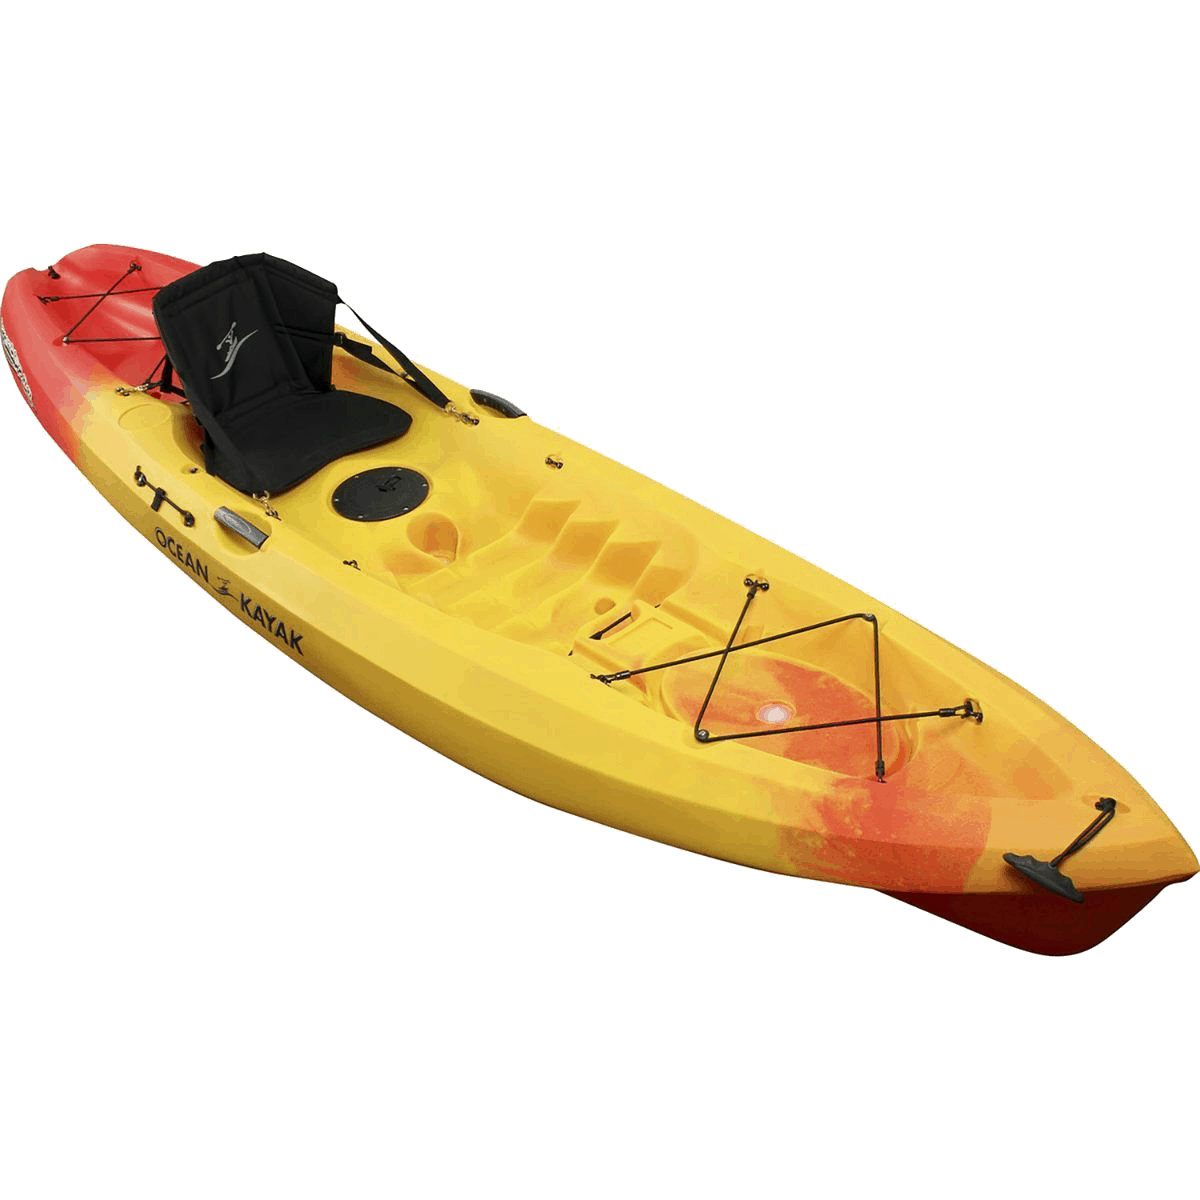 Ocean Kayak Scrambler 11 top 5 sit on top kayaks